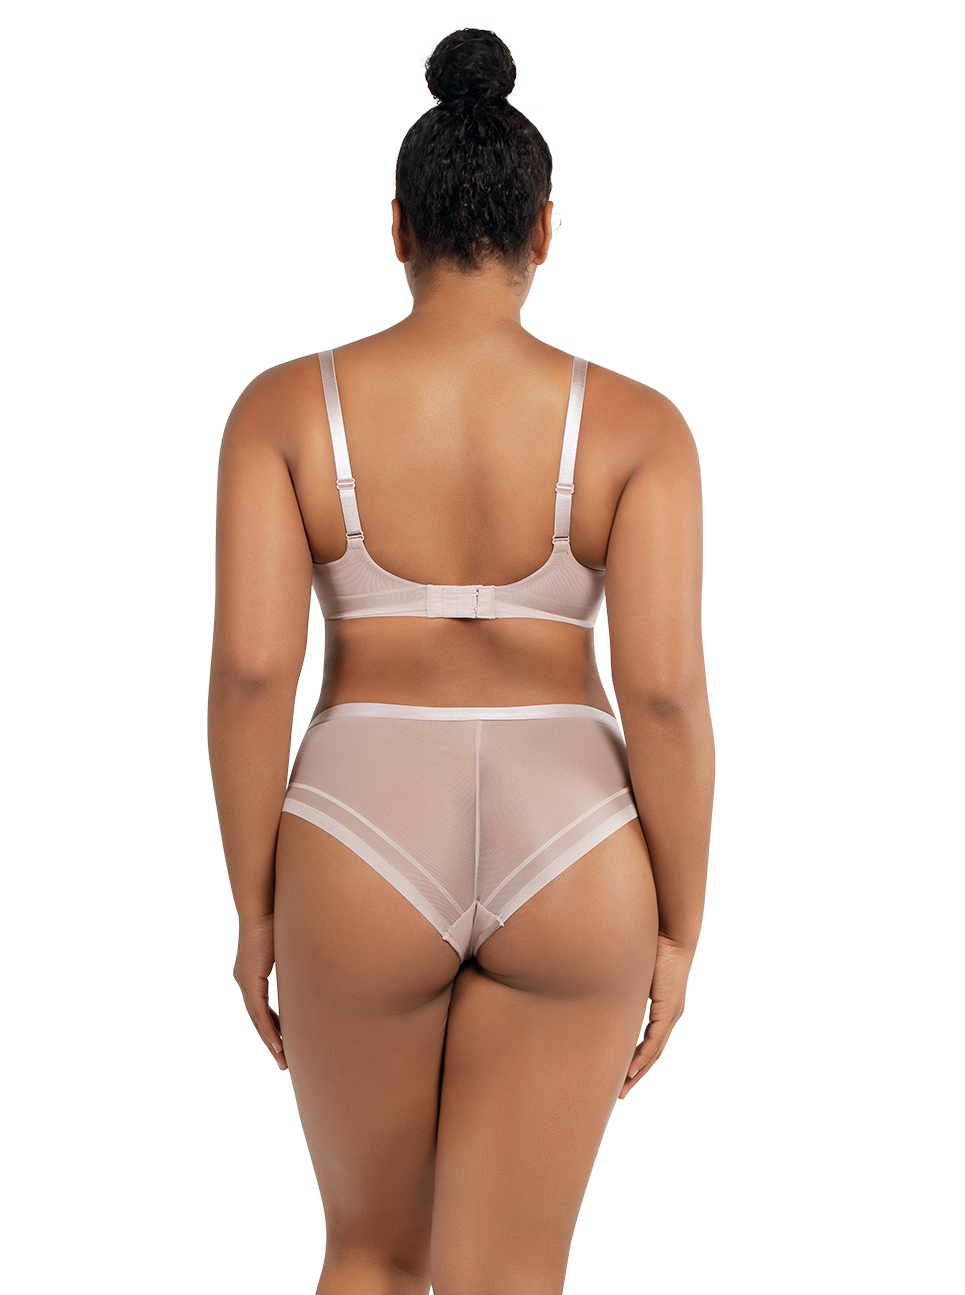 PARFAIT Maya UnlinedBandlessPlungeUnderwireBraP5752 HipsterP5753 ShadowGray Back - Maya Unlined Plunge Bra Shadow Gray P5752